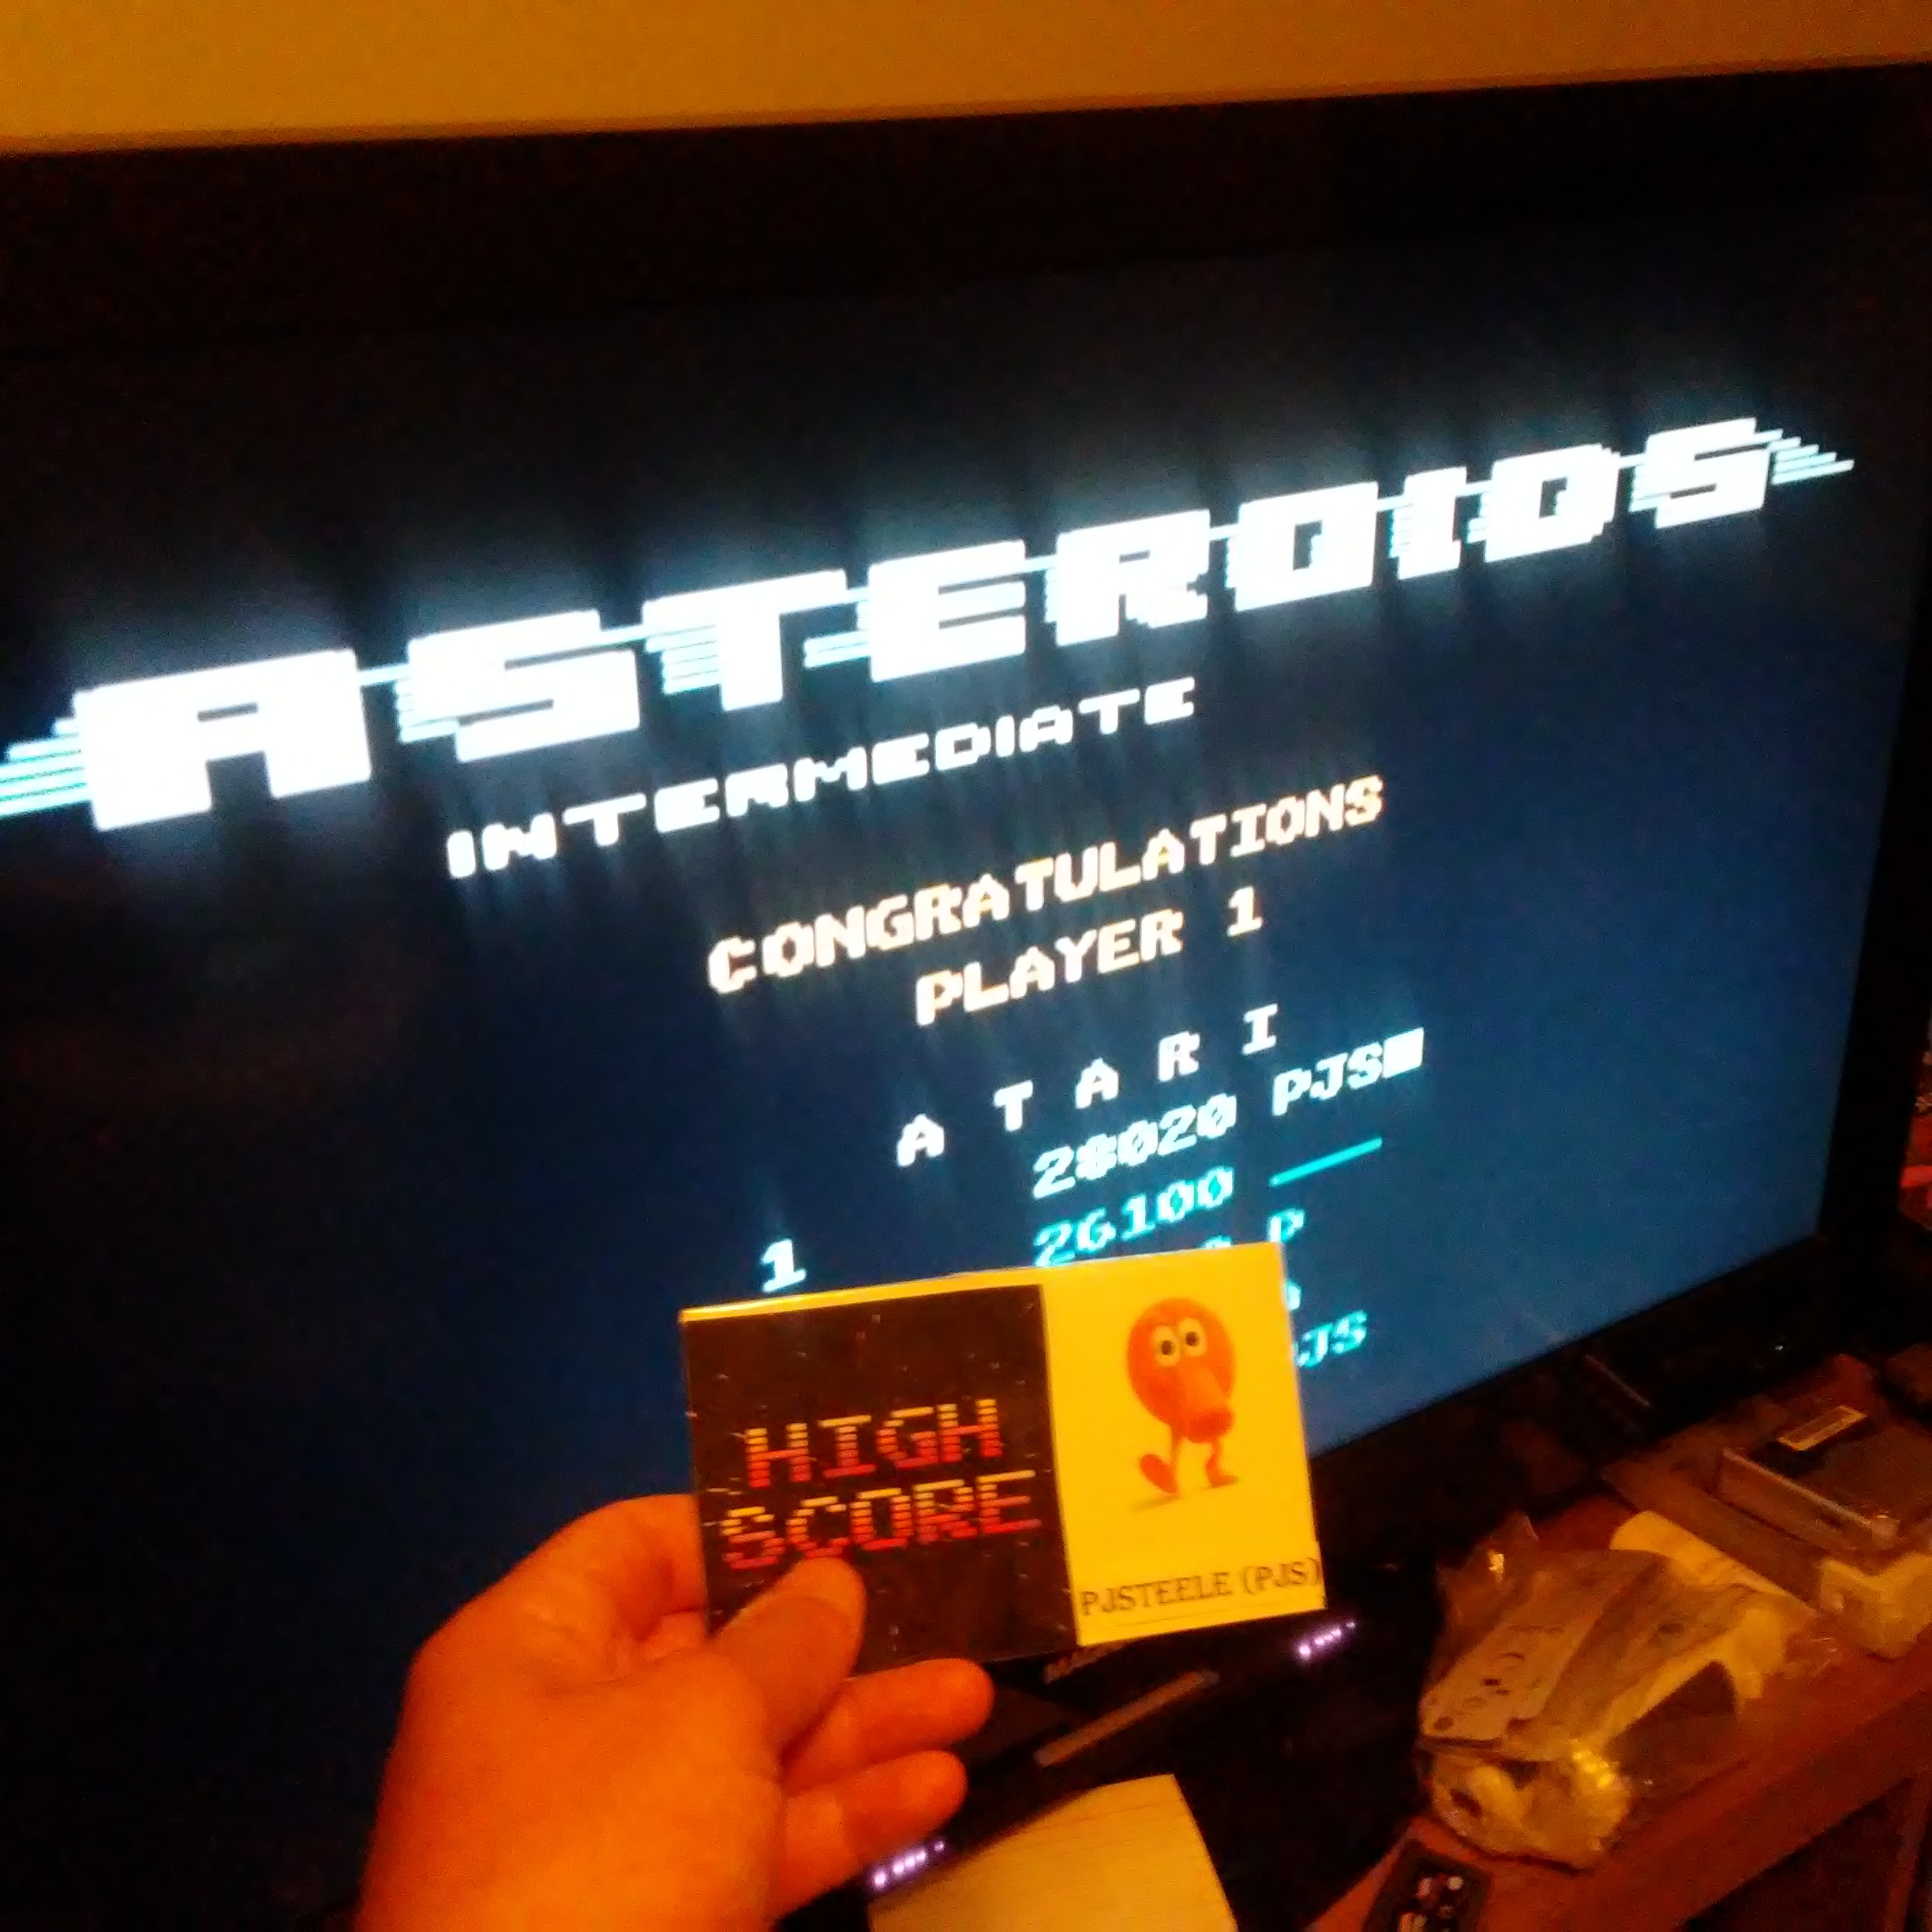 Asteroids: Intermediate 28,020 points